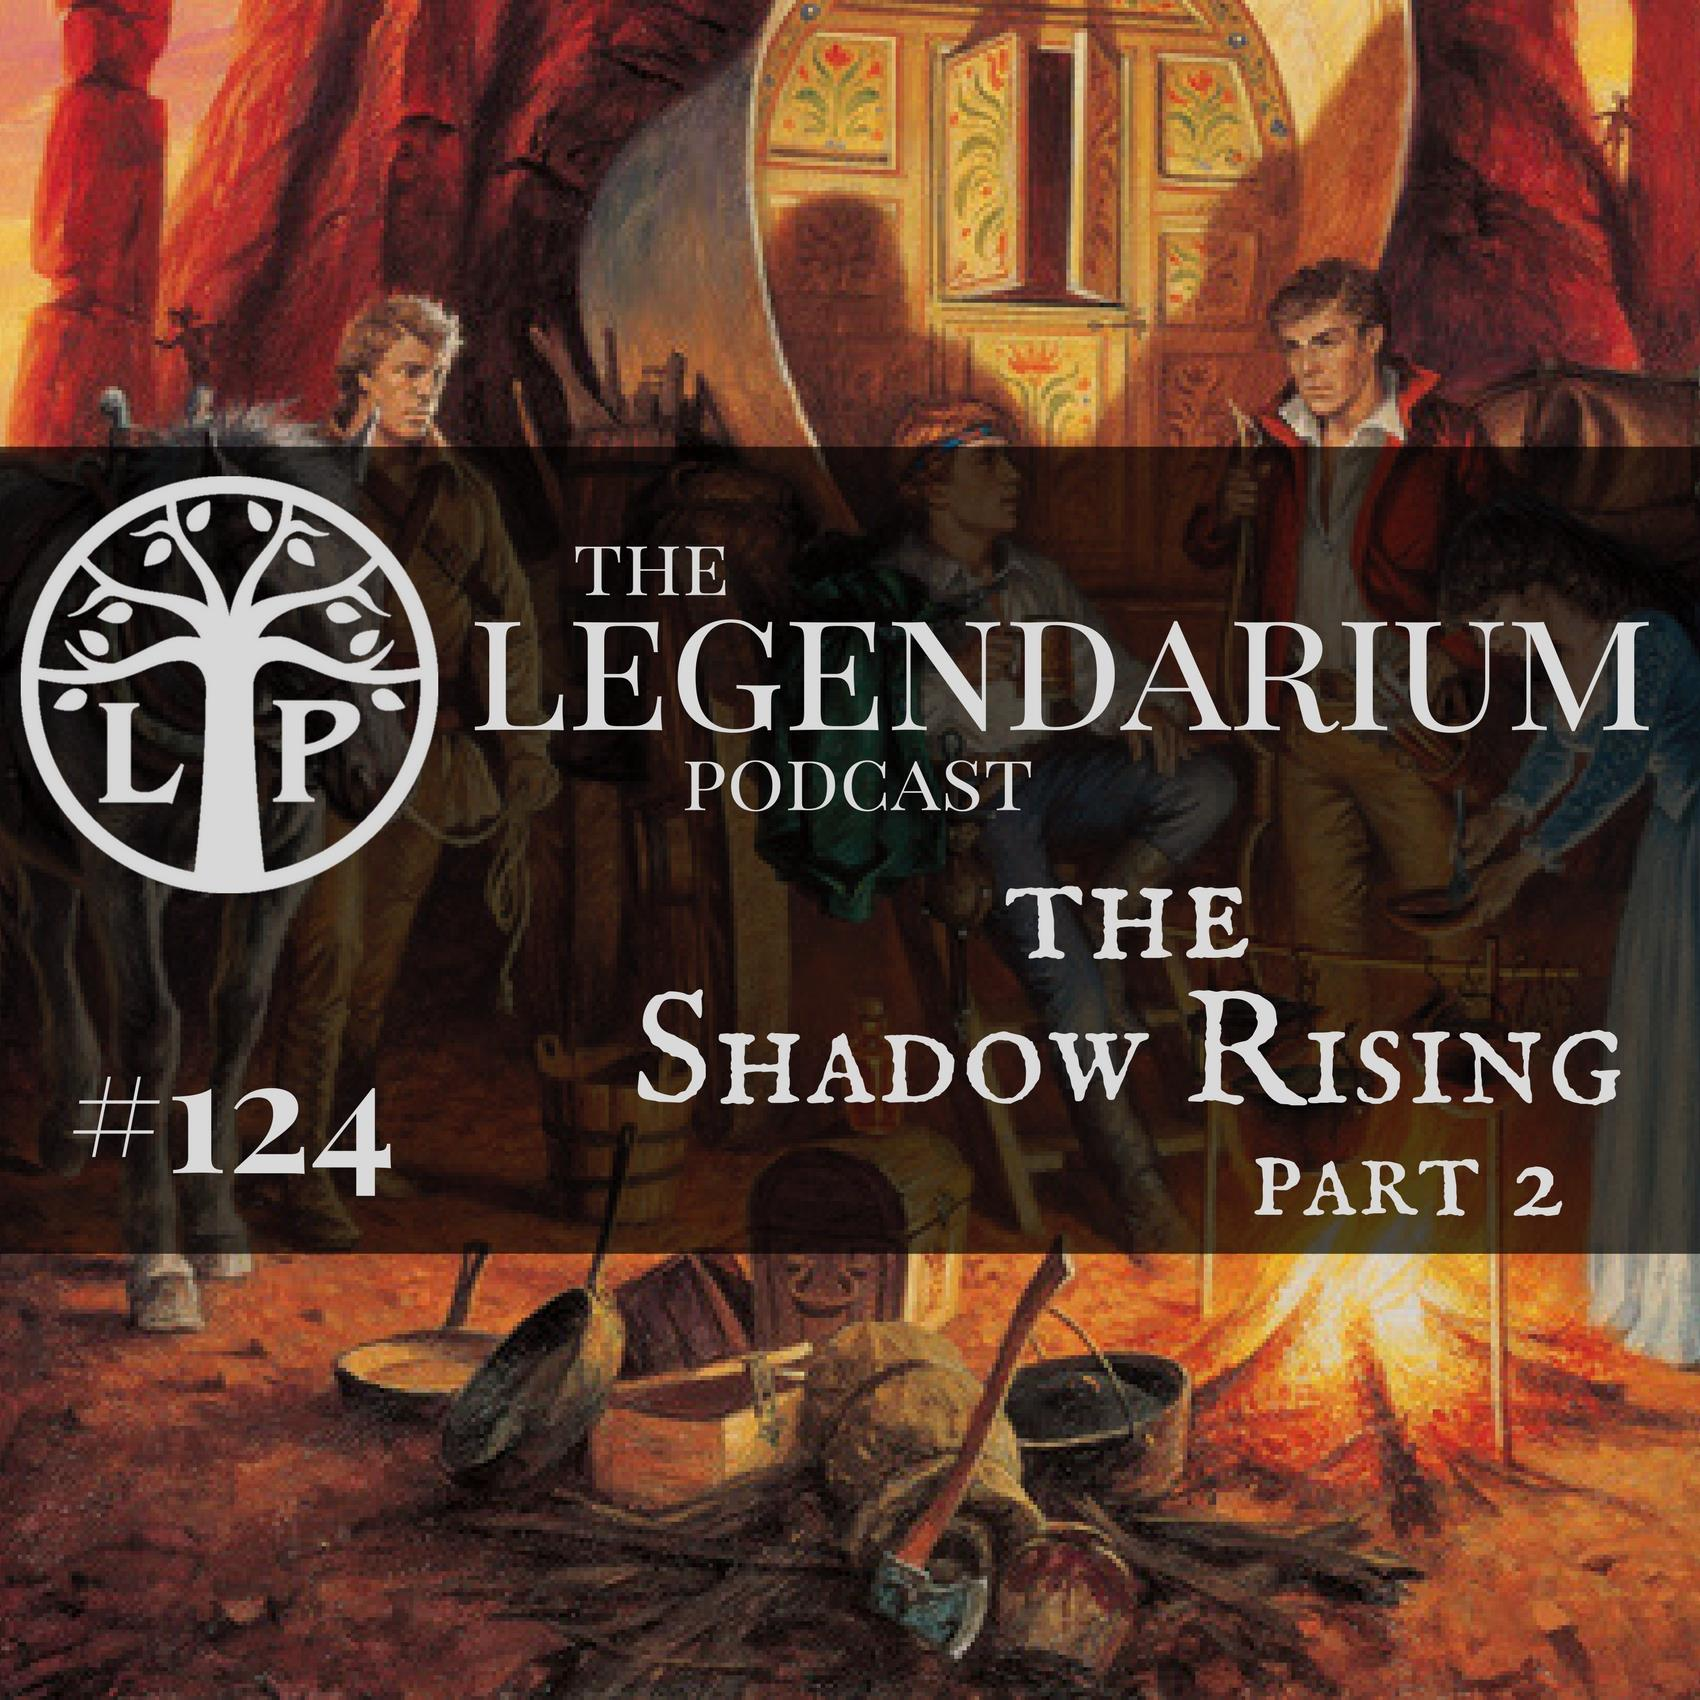 #124. The Shadow Rising, part 2